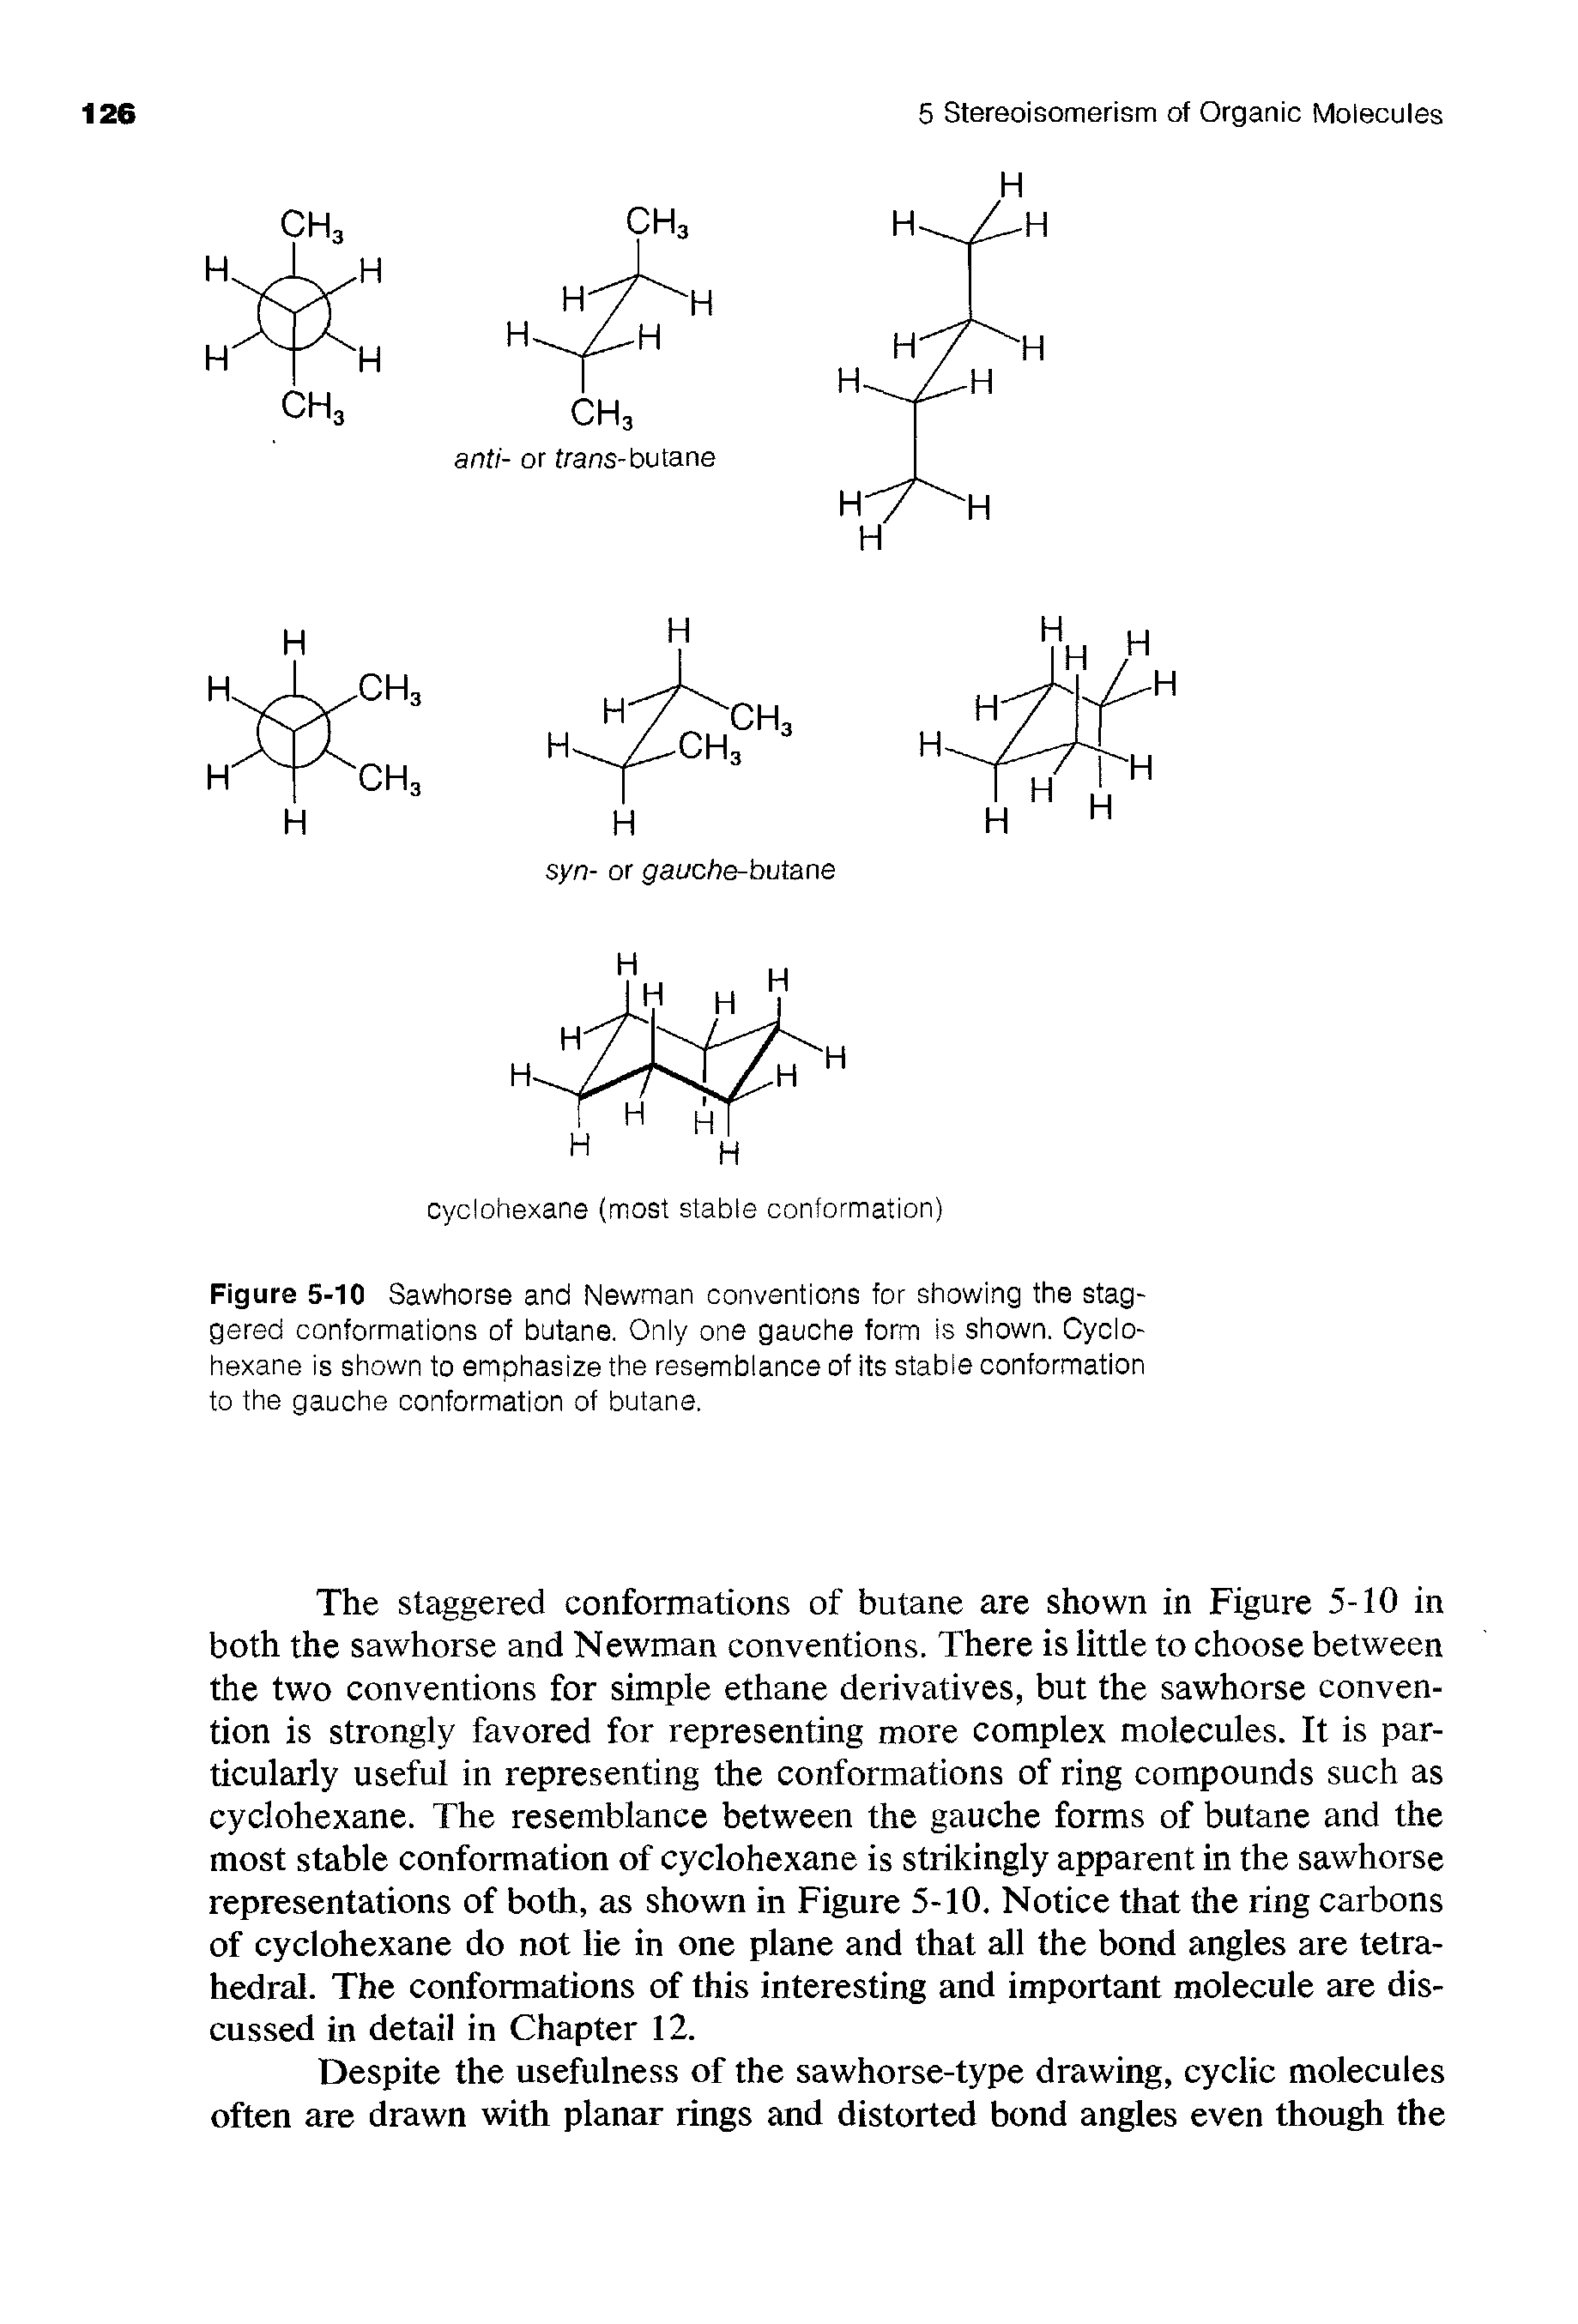 "Figure 5-10 Sawhorse and Newman conventions for showing the <a href=""/info/conformation_staggered"">staggered conformations</a> of butane. Only one <a href=""/info/gauche_form"">gauche form</a> is shown. Cyclohexane is shown to emphasize the resemblance of its <a href=""/info/conformations_stable"">stable conformation</a> to the <a href=""/info/conformation_gauche"">gauche conformation</a> of butane."